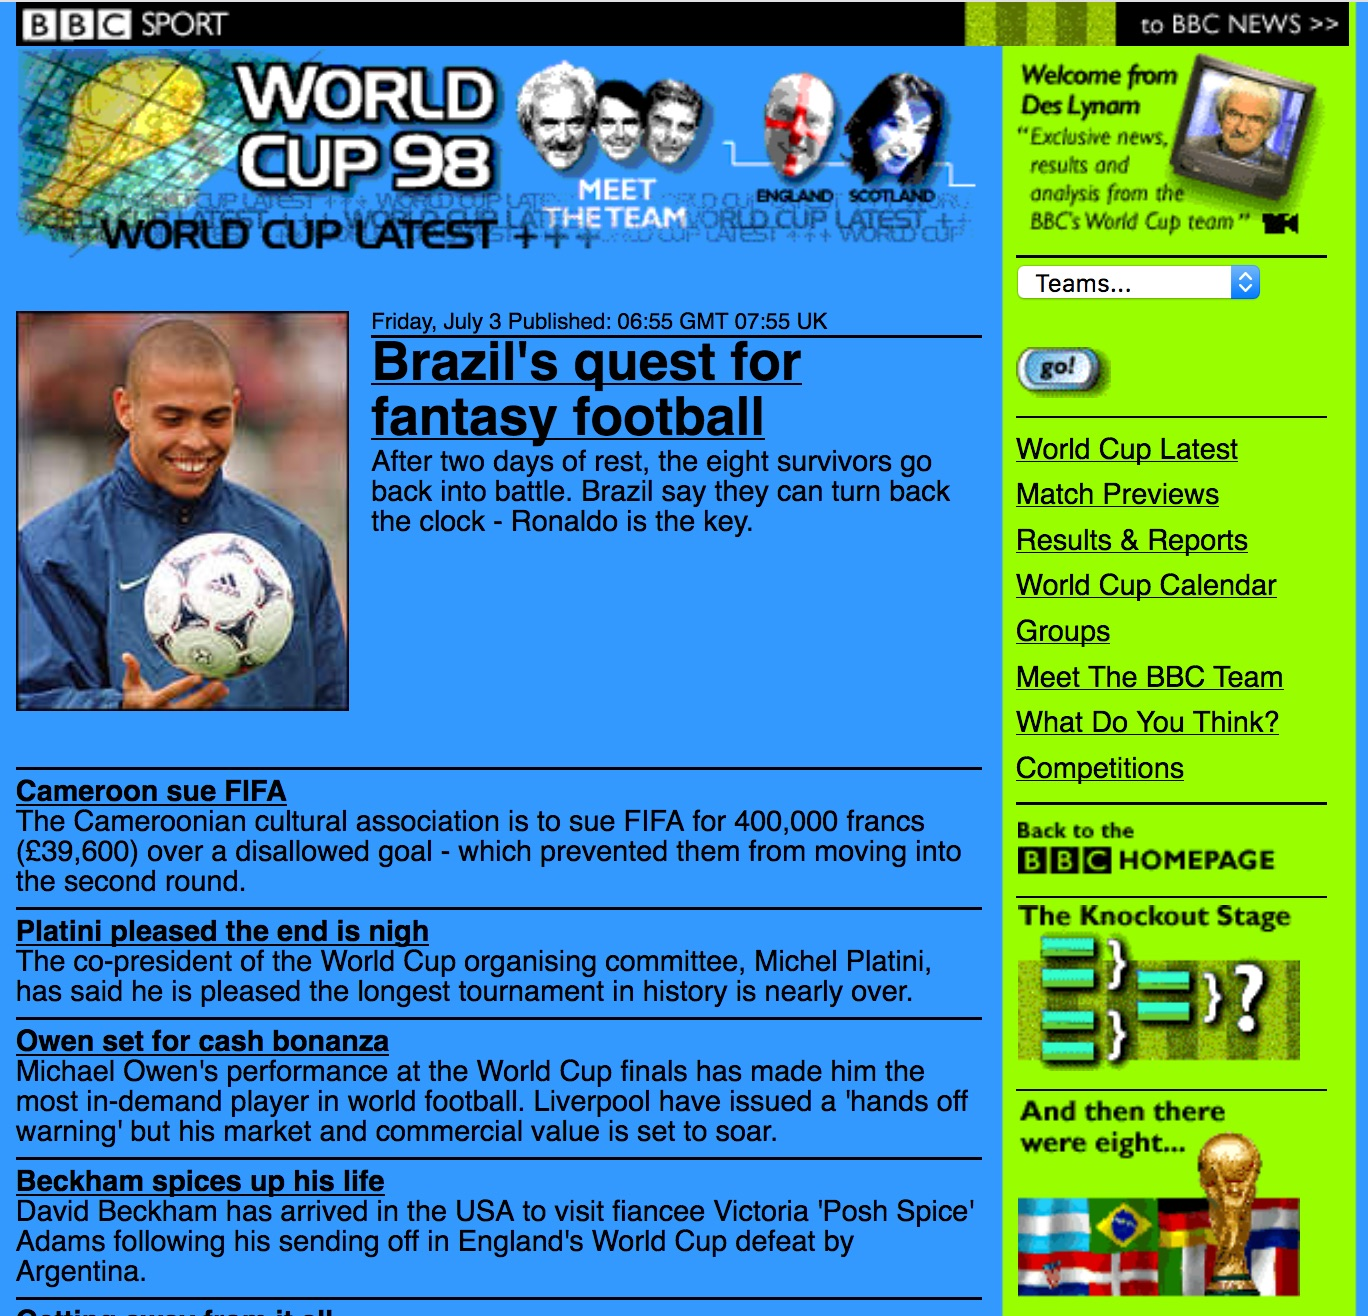 BBC.co.uk World Cup site (1998)